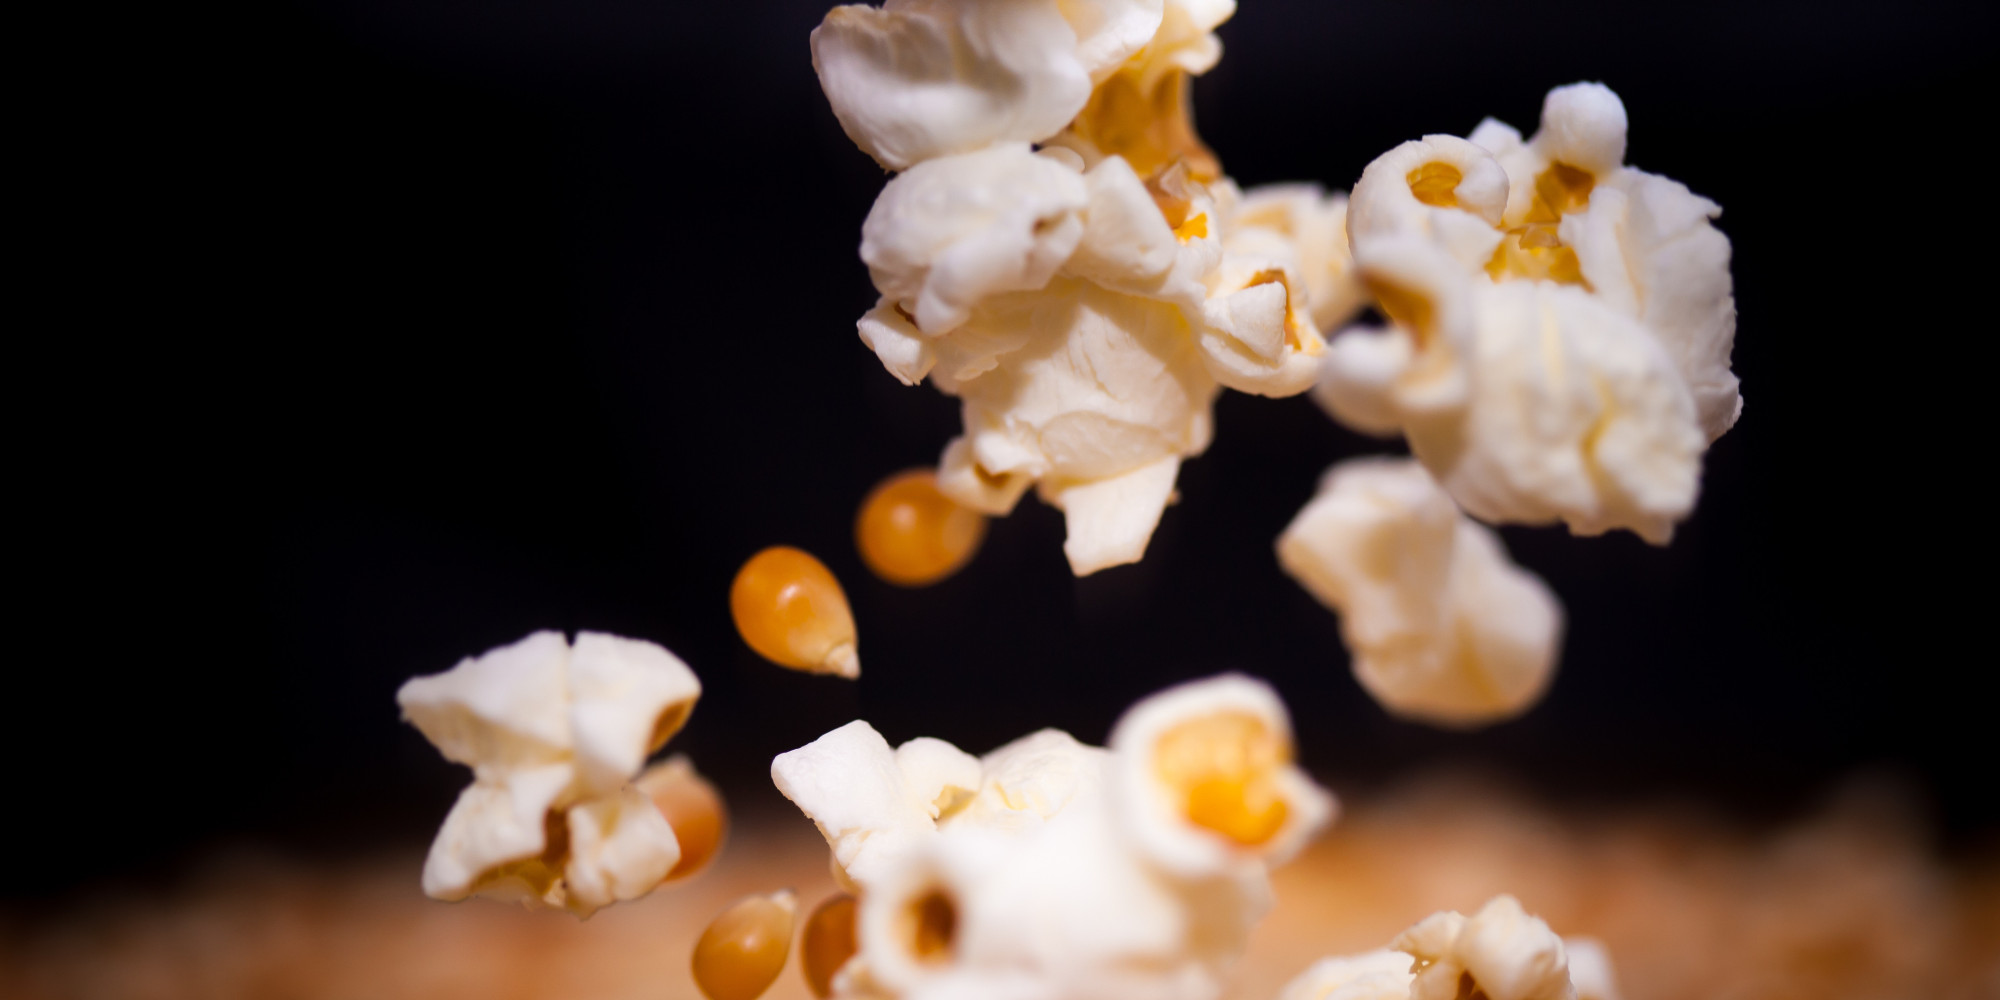 """Popcorn is a special type of corn that """"pops"""" when exposed to heat - Serious Facts"""